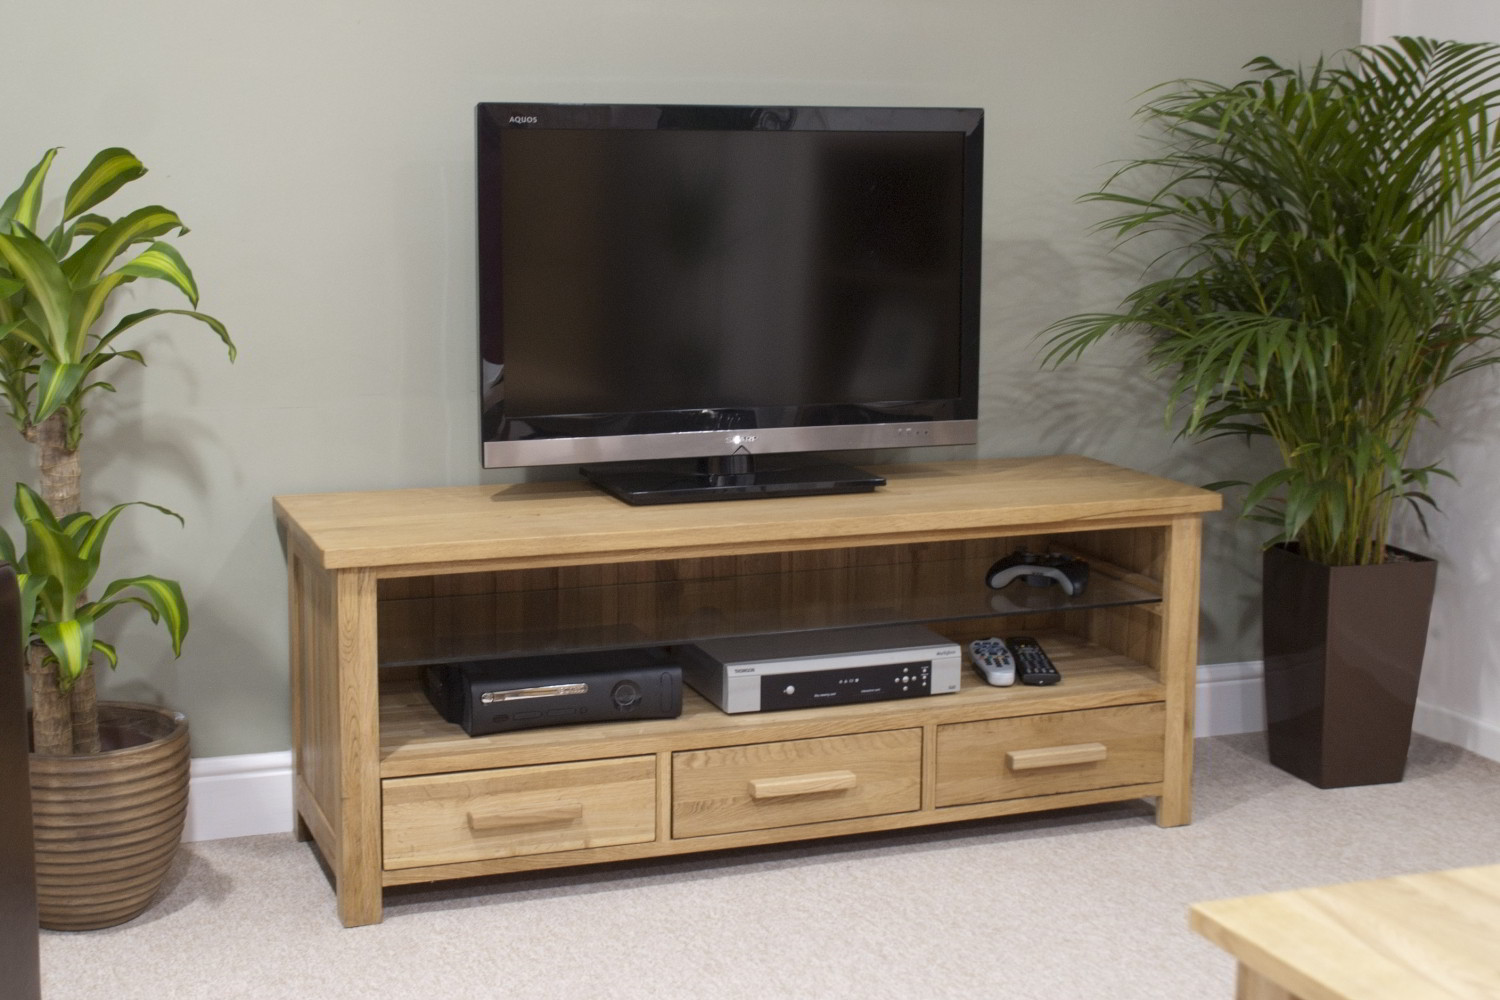 eton solid oak living room furniture widescreen tv cabinet. Black Bedroom Furniture Sets. Home Design Ideas